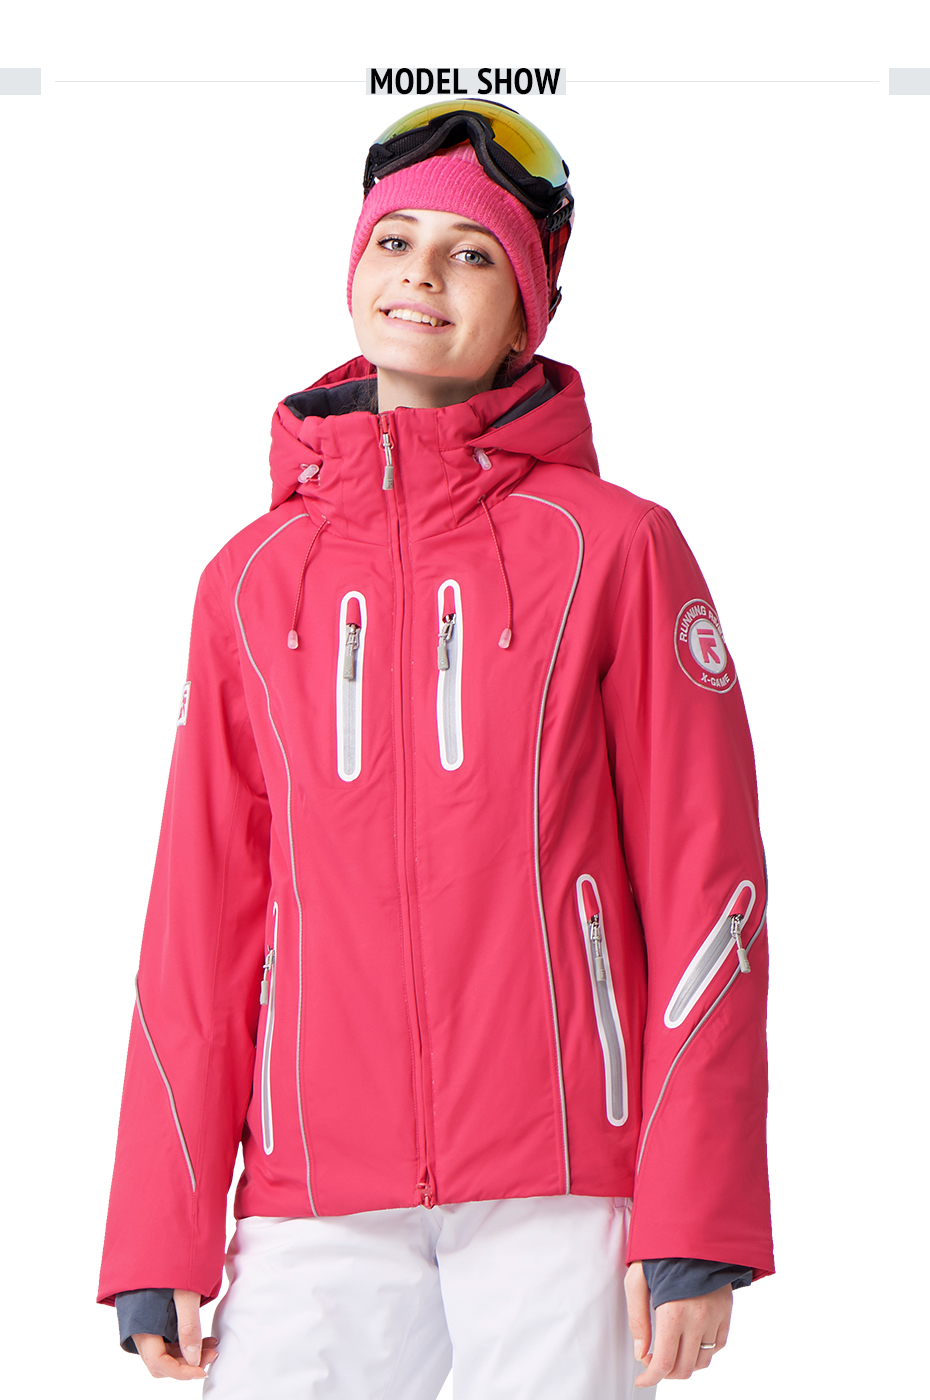 RUNNING RIVER Brand Women Ski Jacket snowboard Ship From Russia   China  Size S-3XL High Quality Warm Women Winter Jacket  A4015 51a2f8ce4